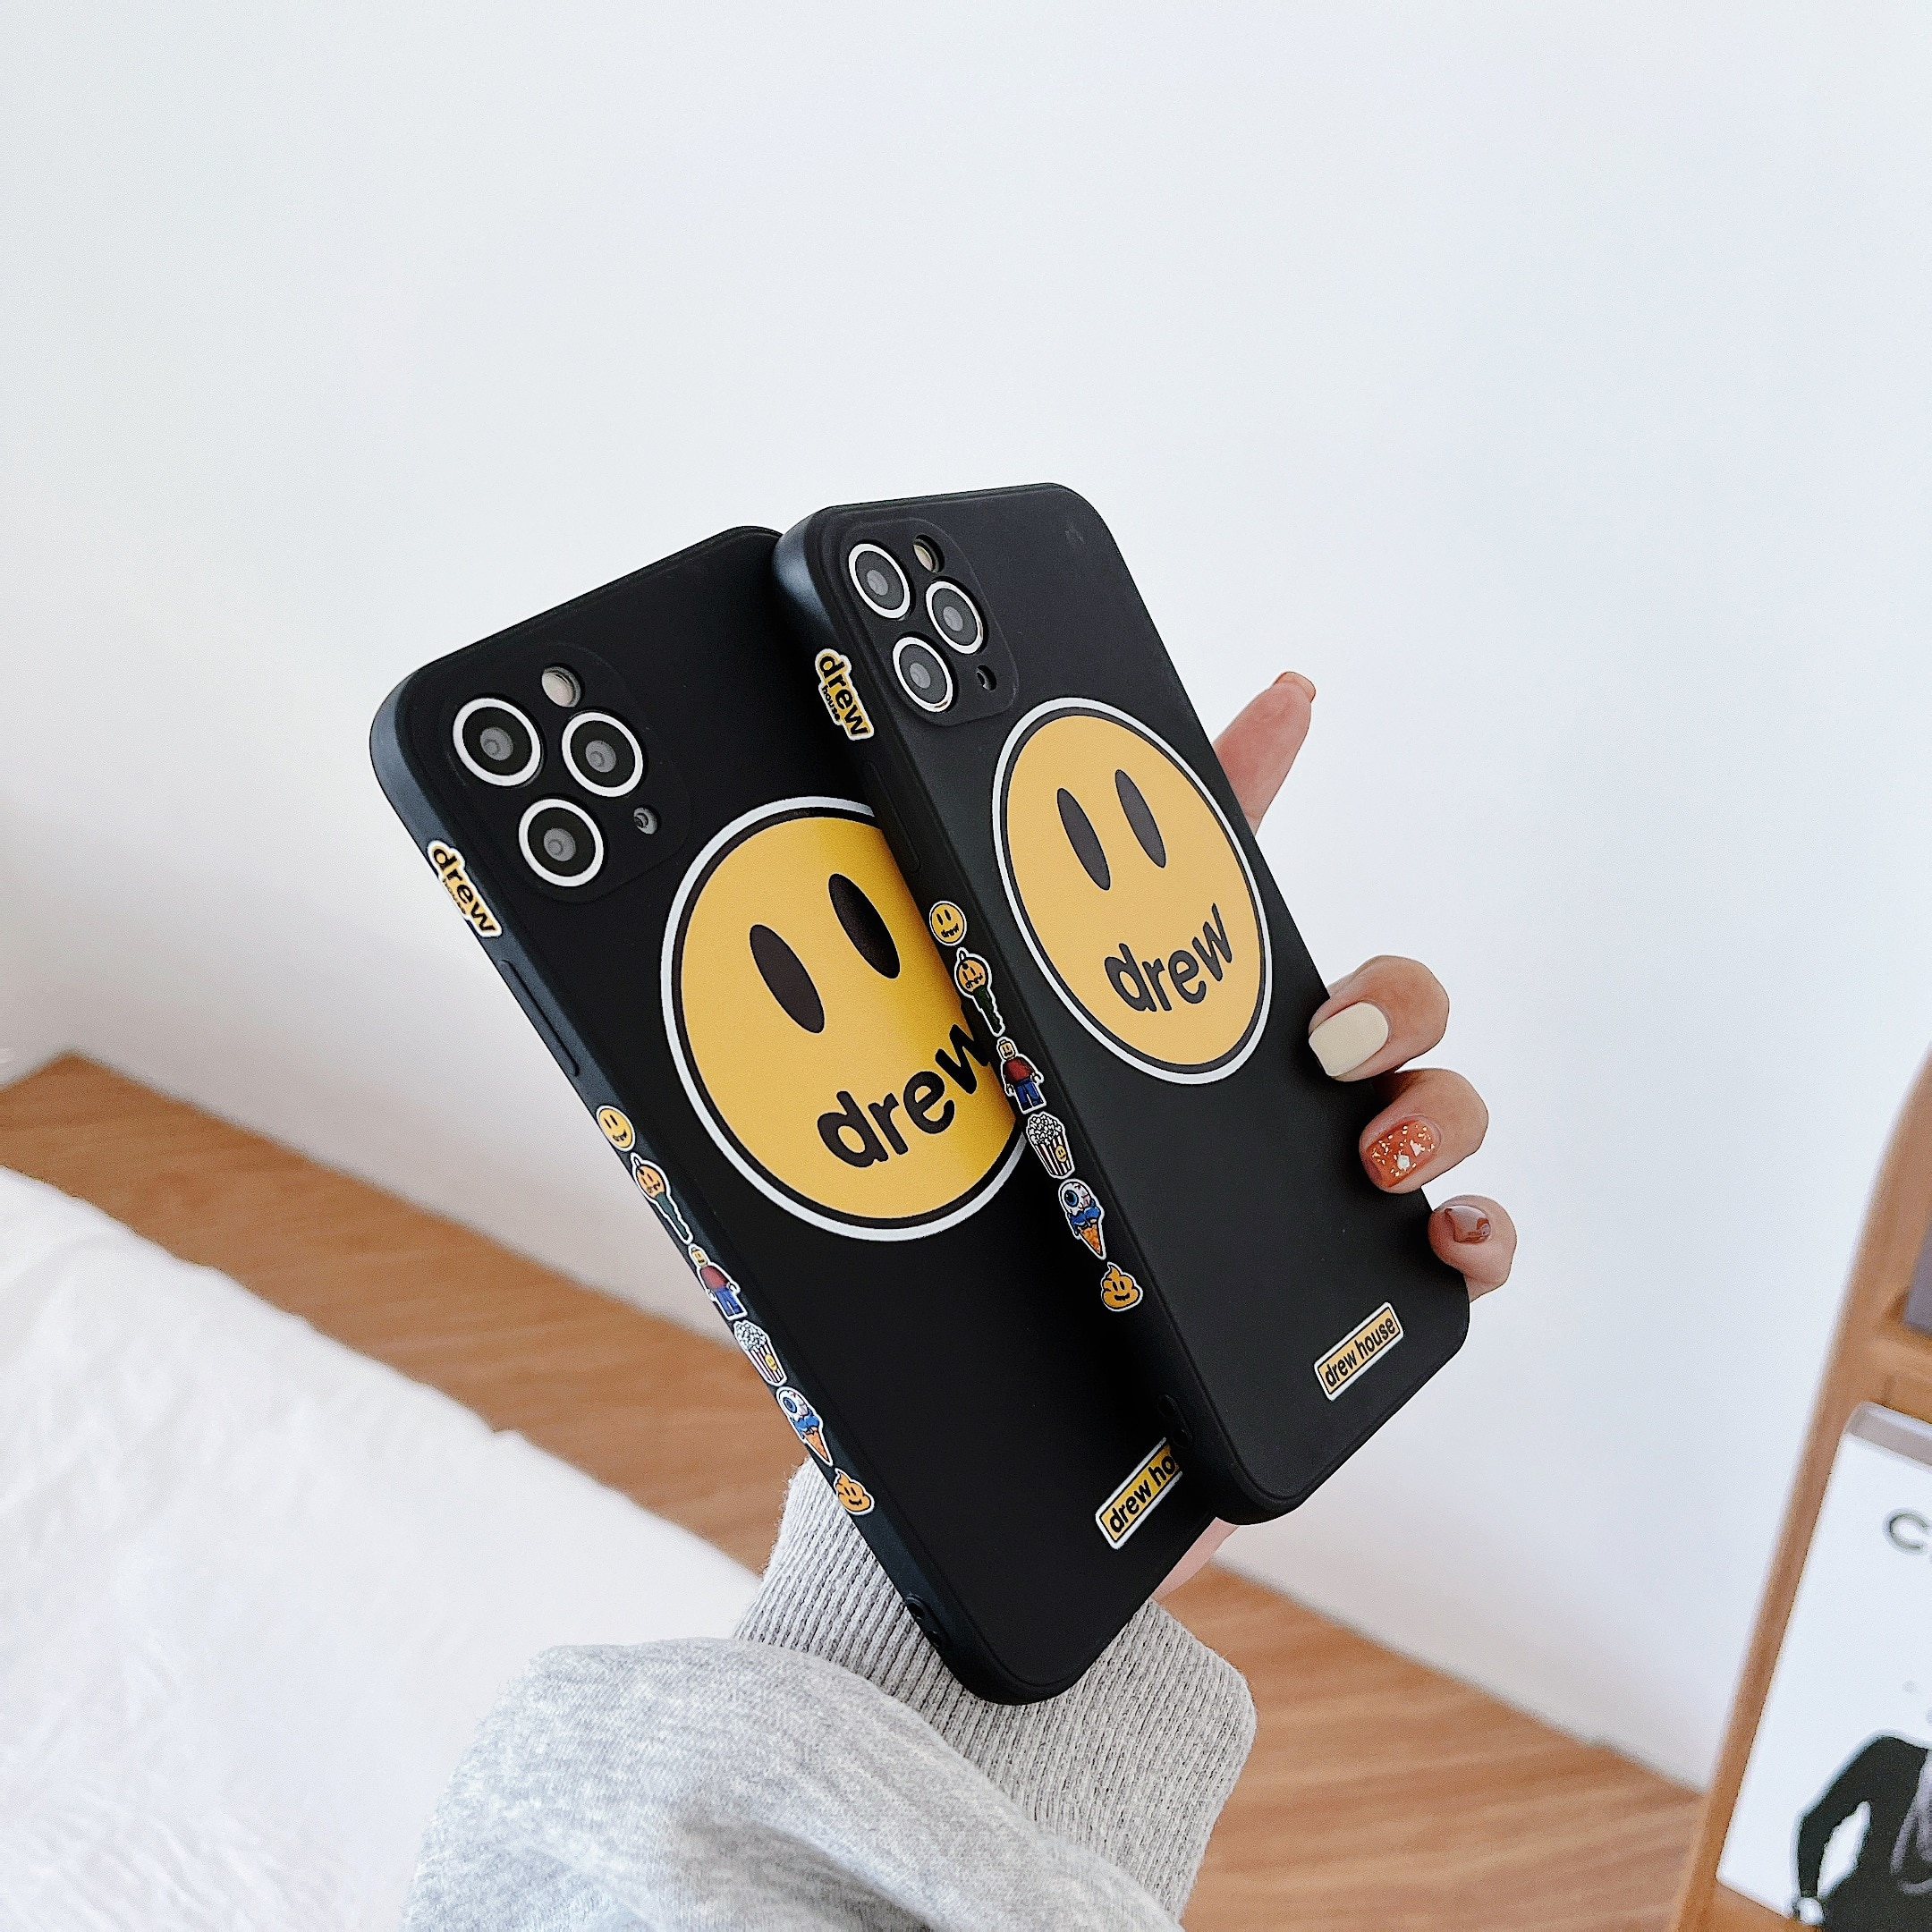 Soft Silicone Protection drop proof phone case for iPhone 11 12 pro Max x xs max xr 7 8p Luxury shel